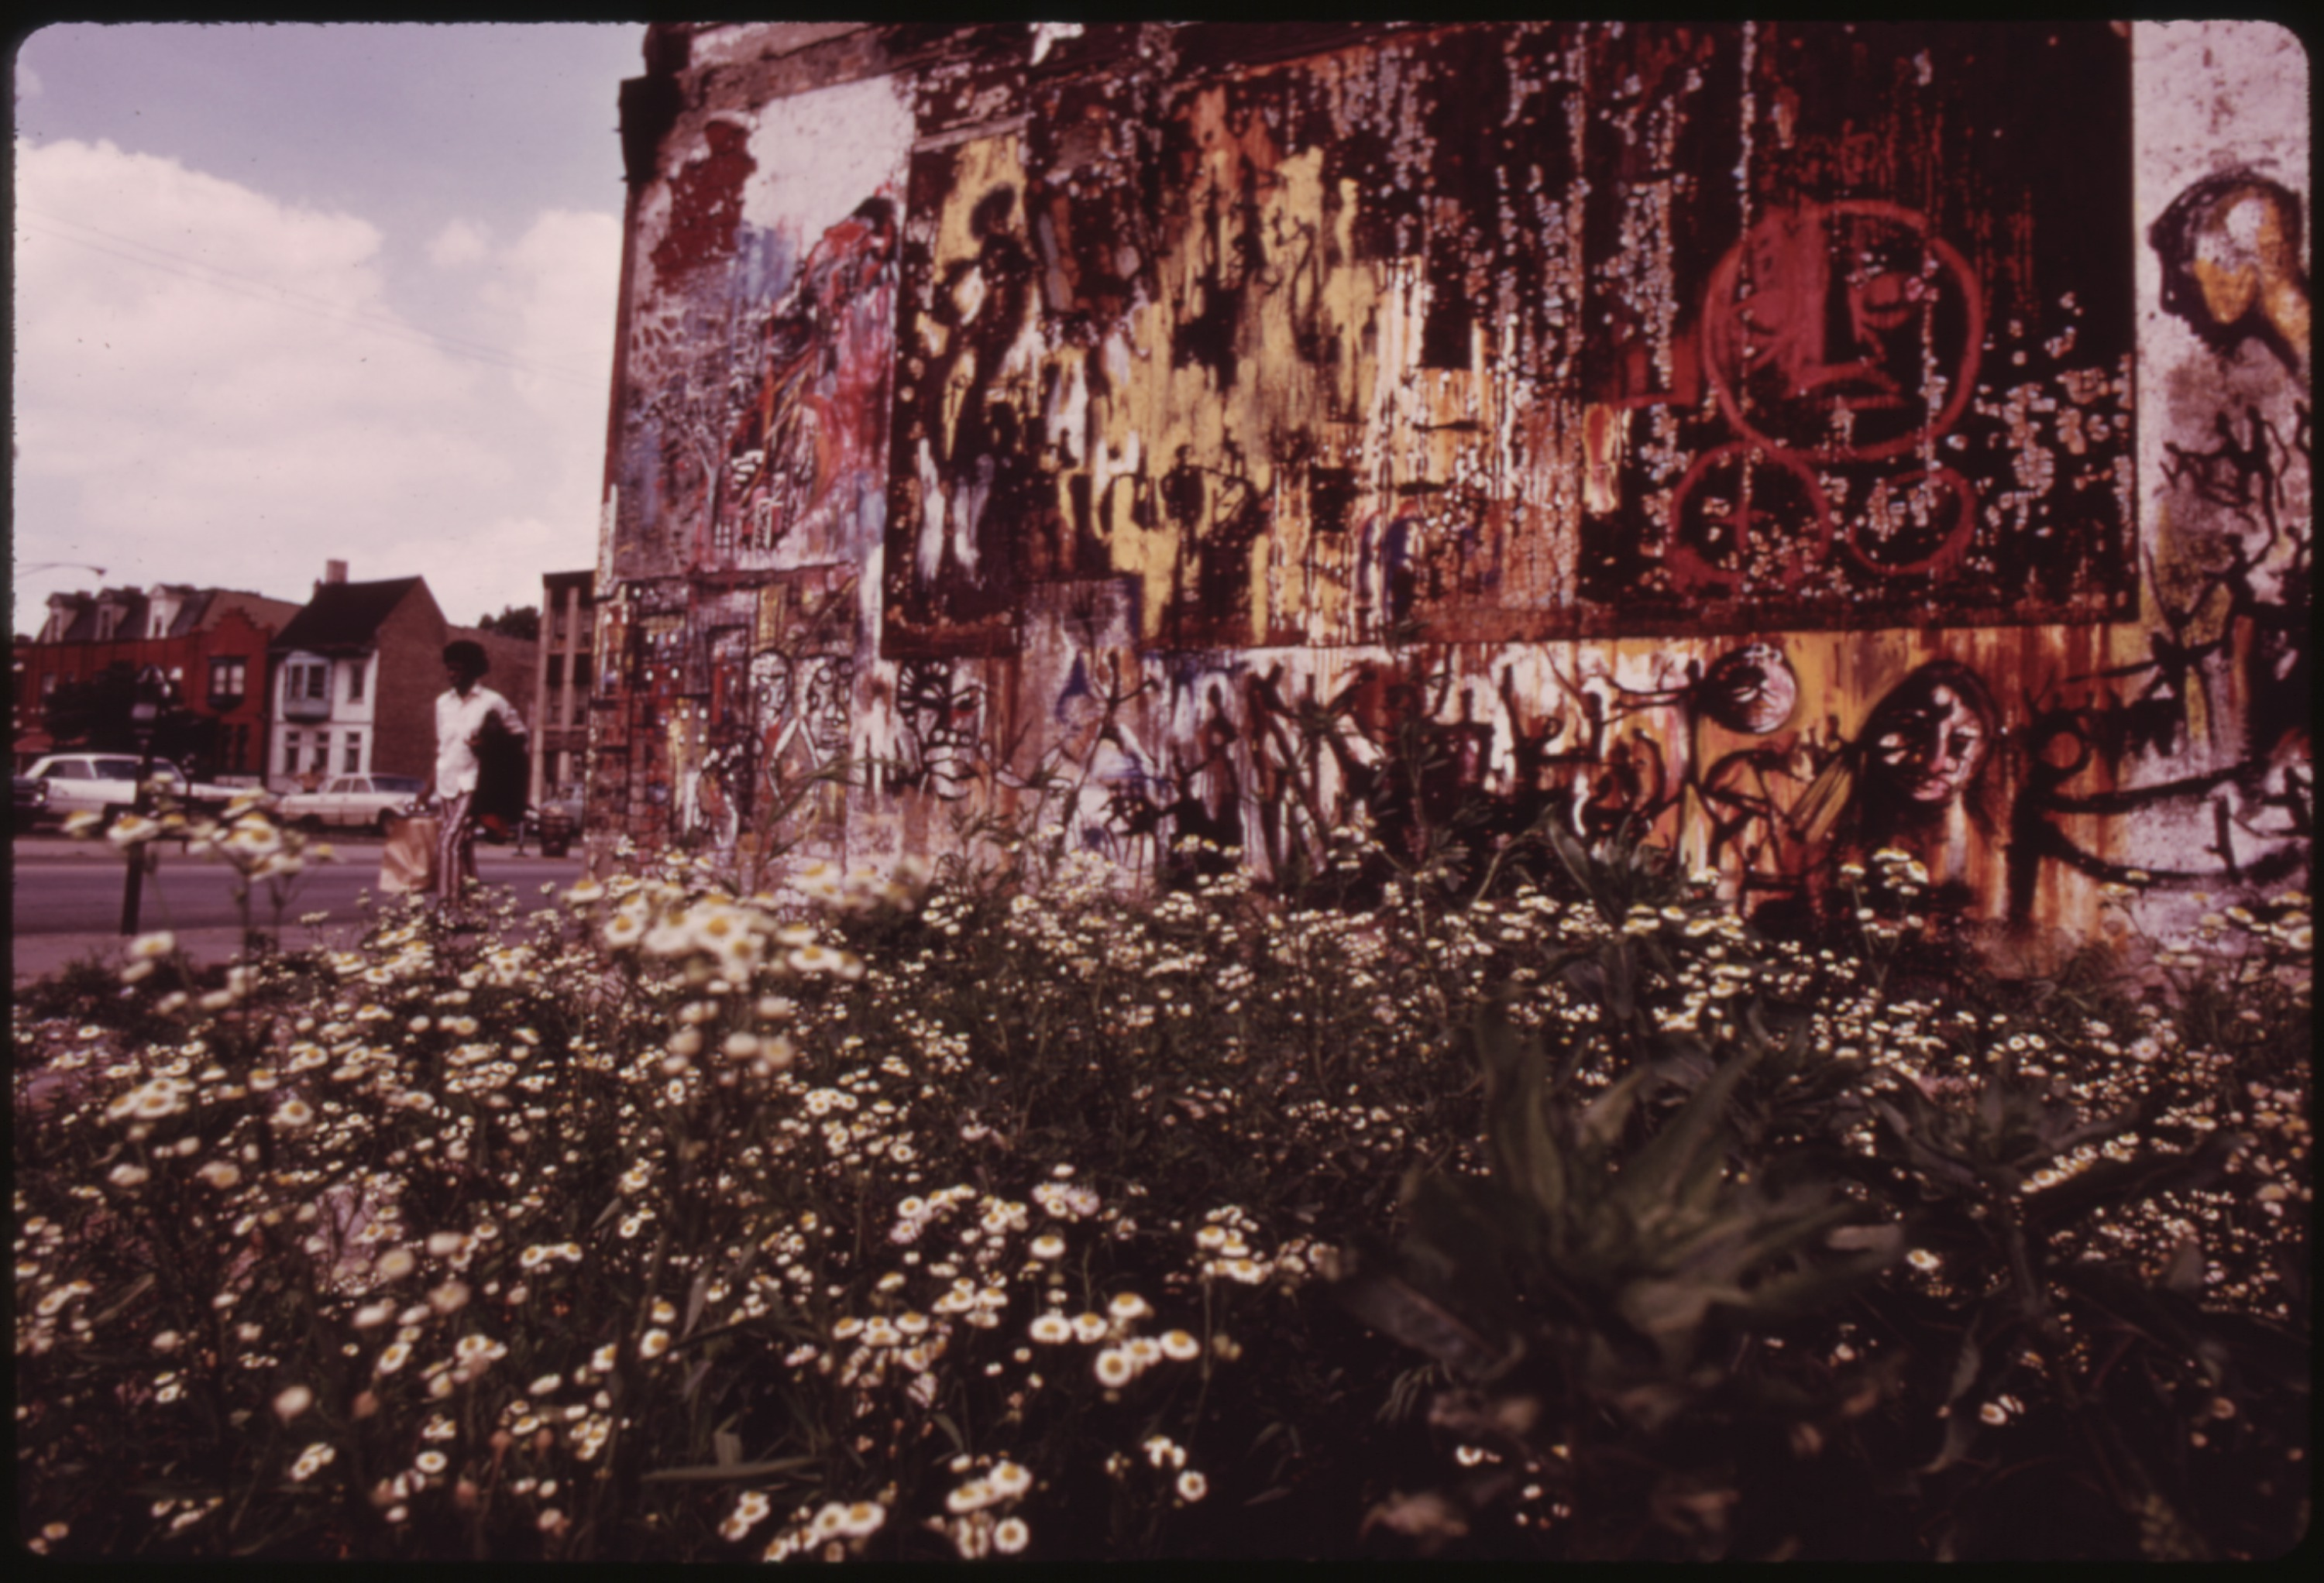 File:DETERIORATED WALL MURAL ADJACENT TO A VACANT LOT ON ...